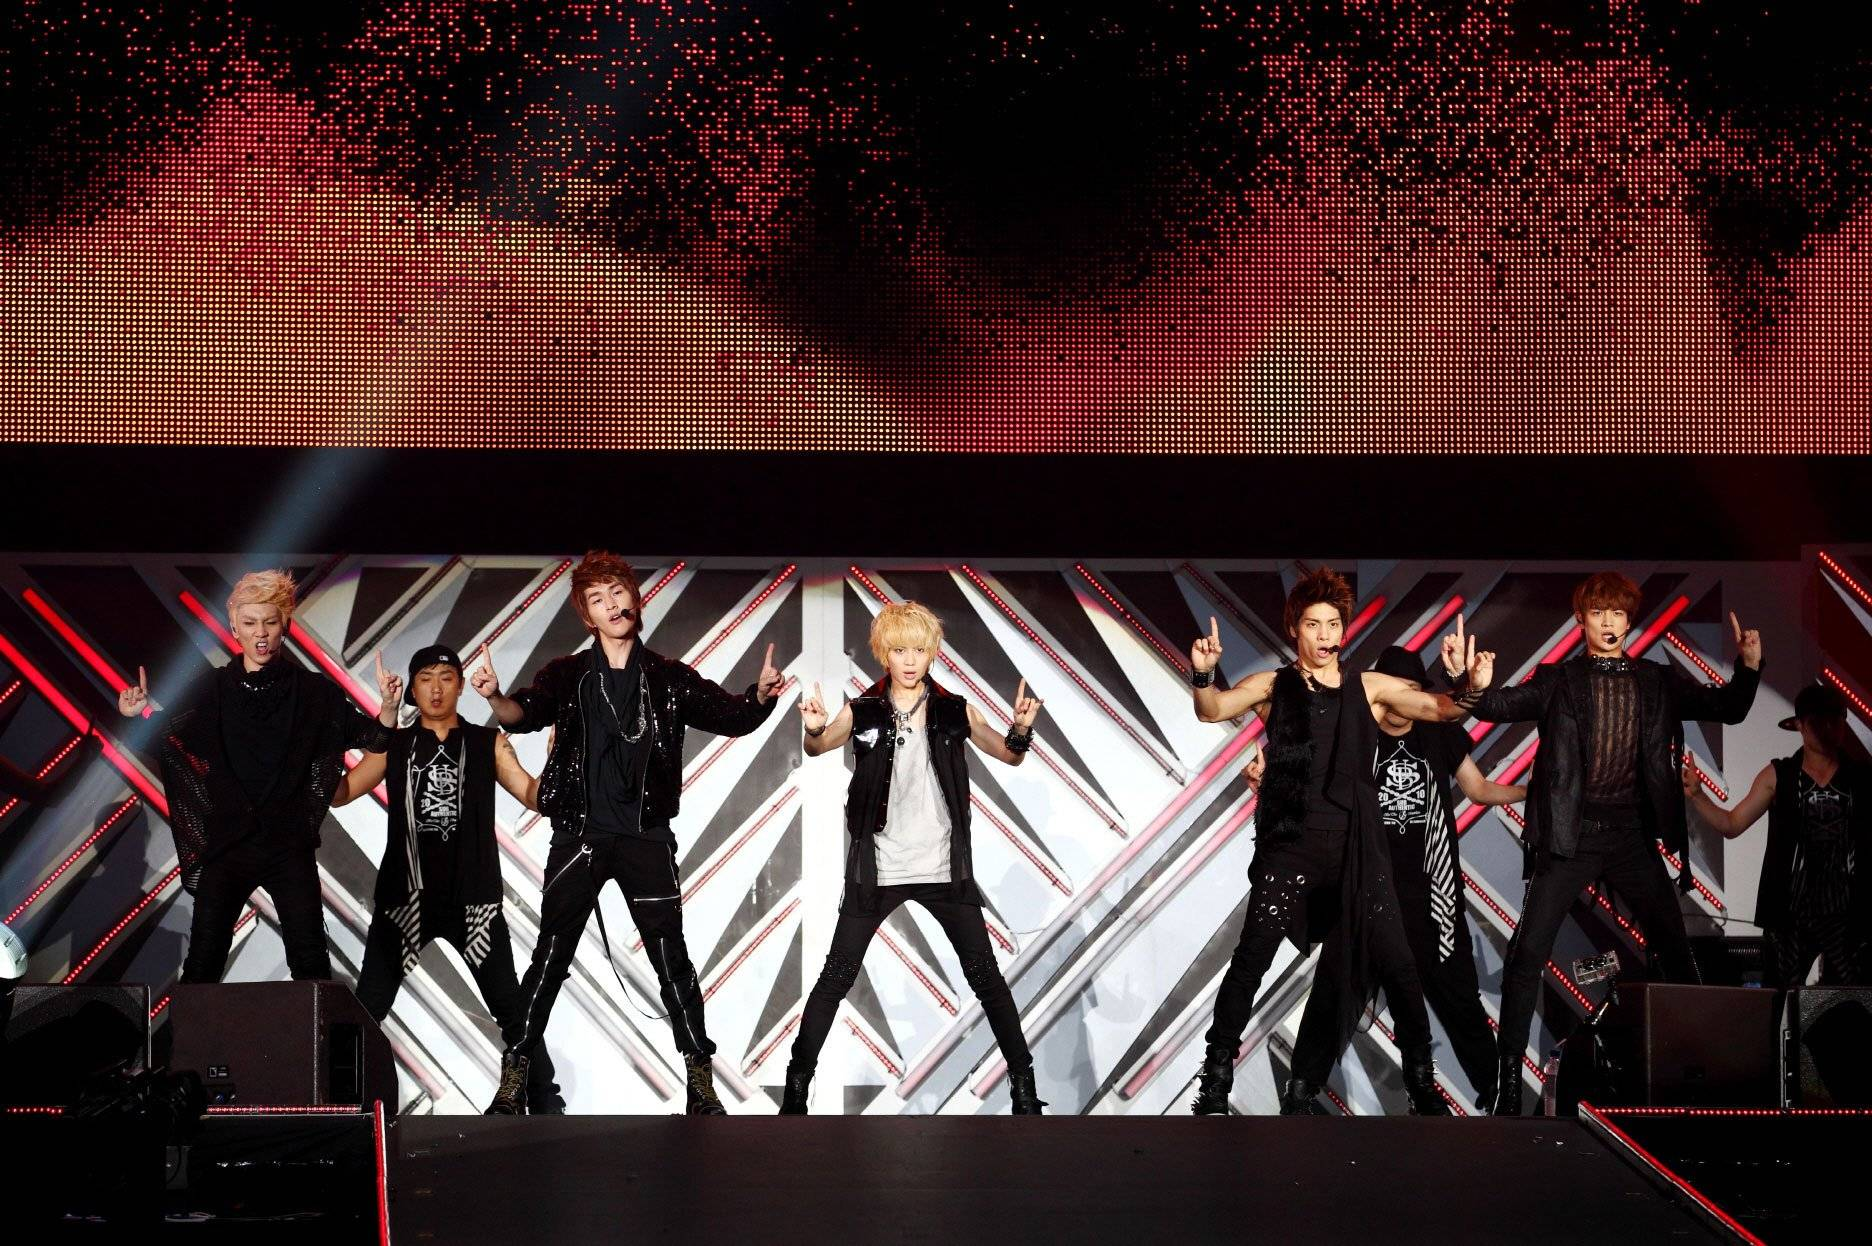 120222 smtown live in tokyo (special edition) oh! By girls.